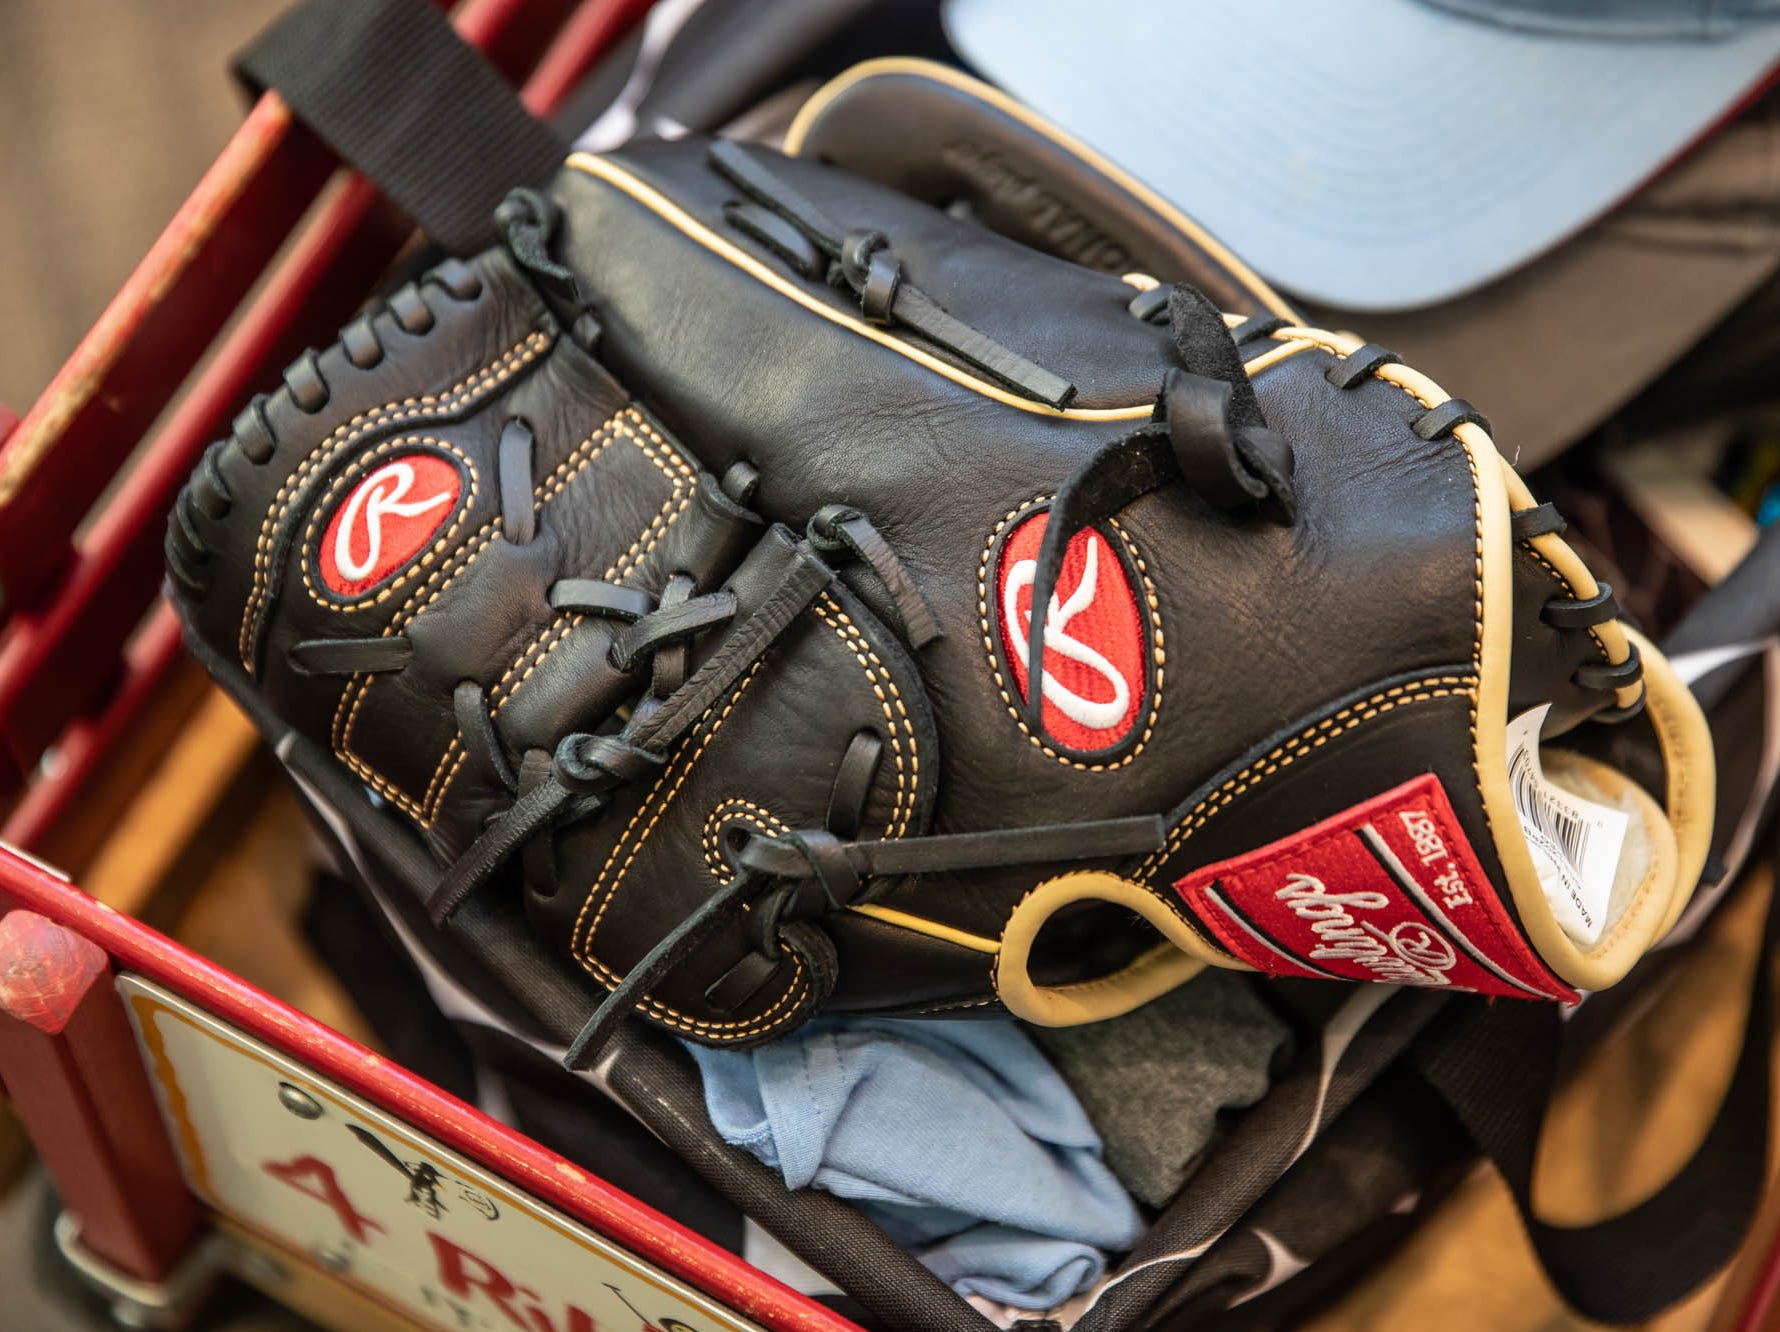 Britton Helmuth's baseball glove waits for him in a wagon at Riley Hospital for Children. After his second heart surgery, Britton has been cleared to play baseball again.